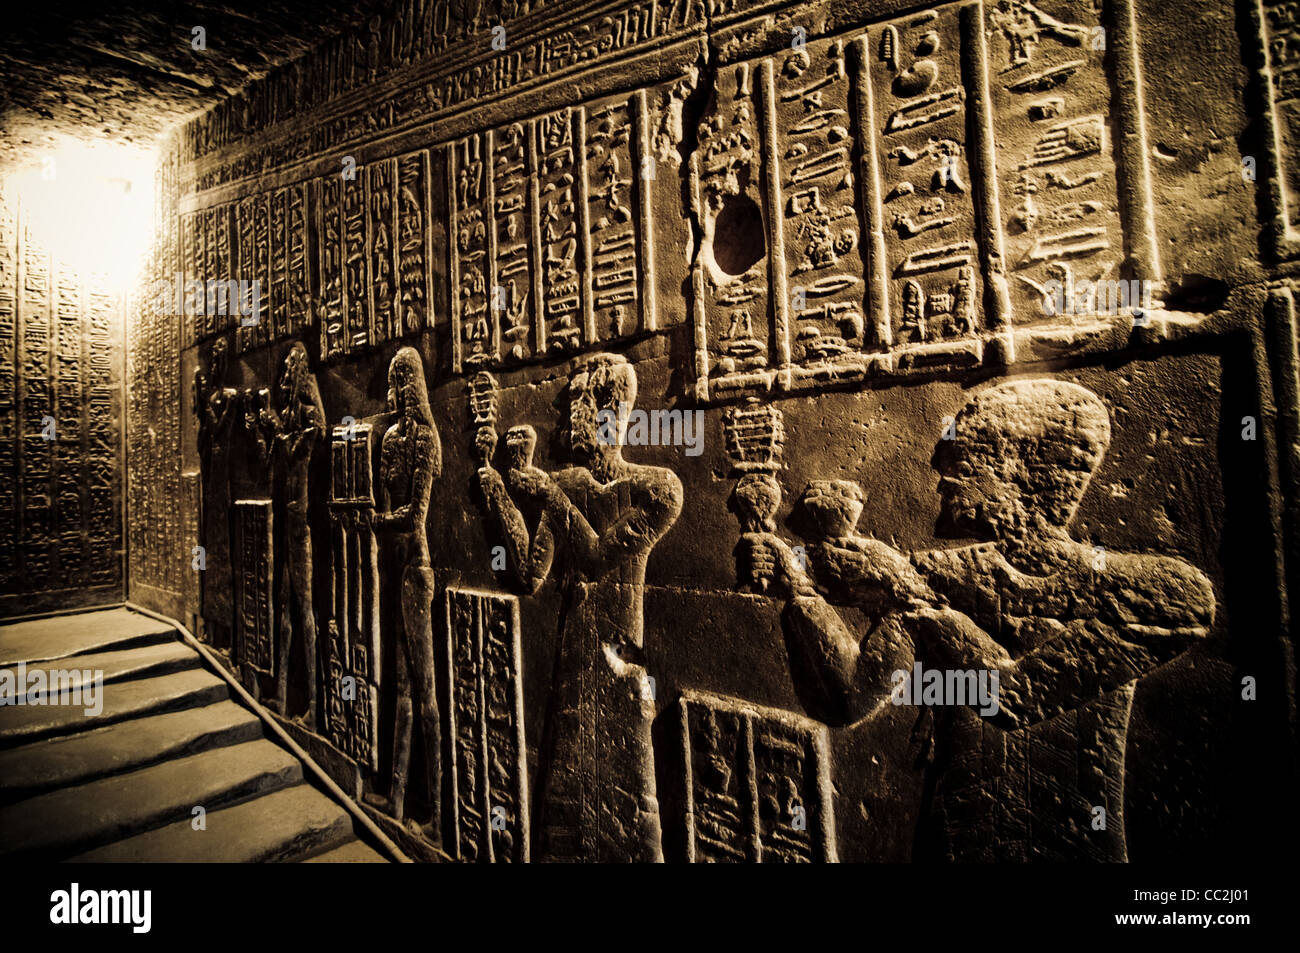 Wall reliefs of priests in the tunnels at the Temple of Dendera, Egypt, circa 200 BC - Stock Image